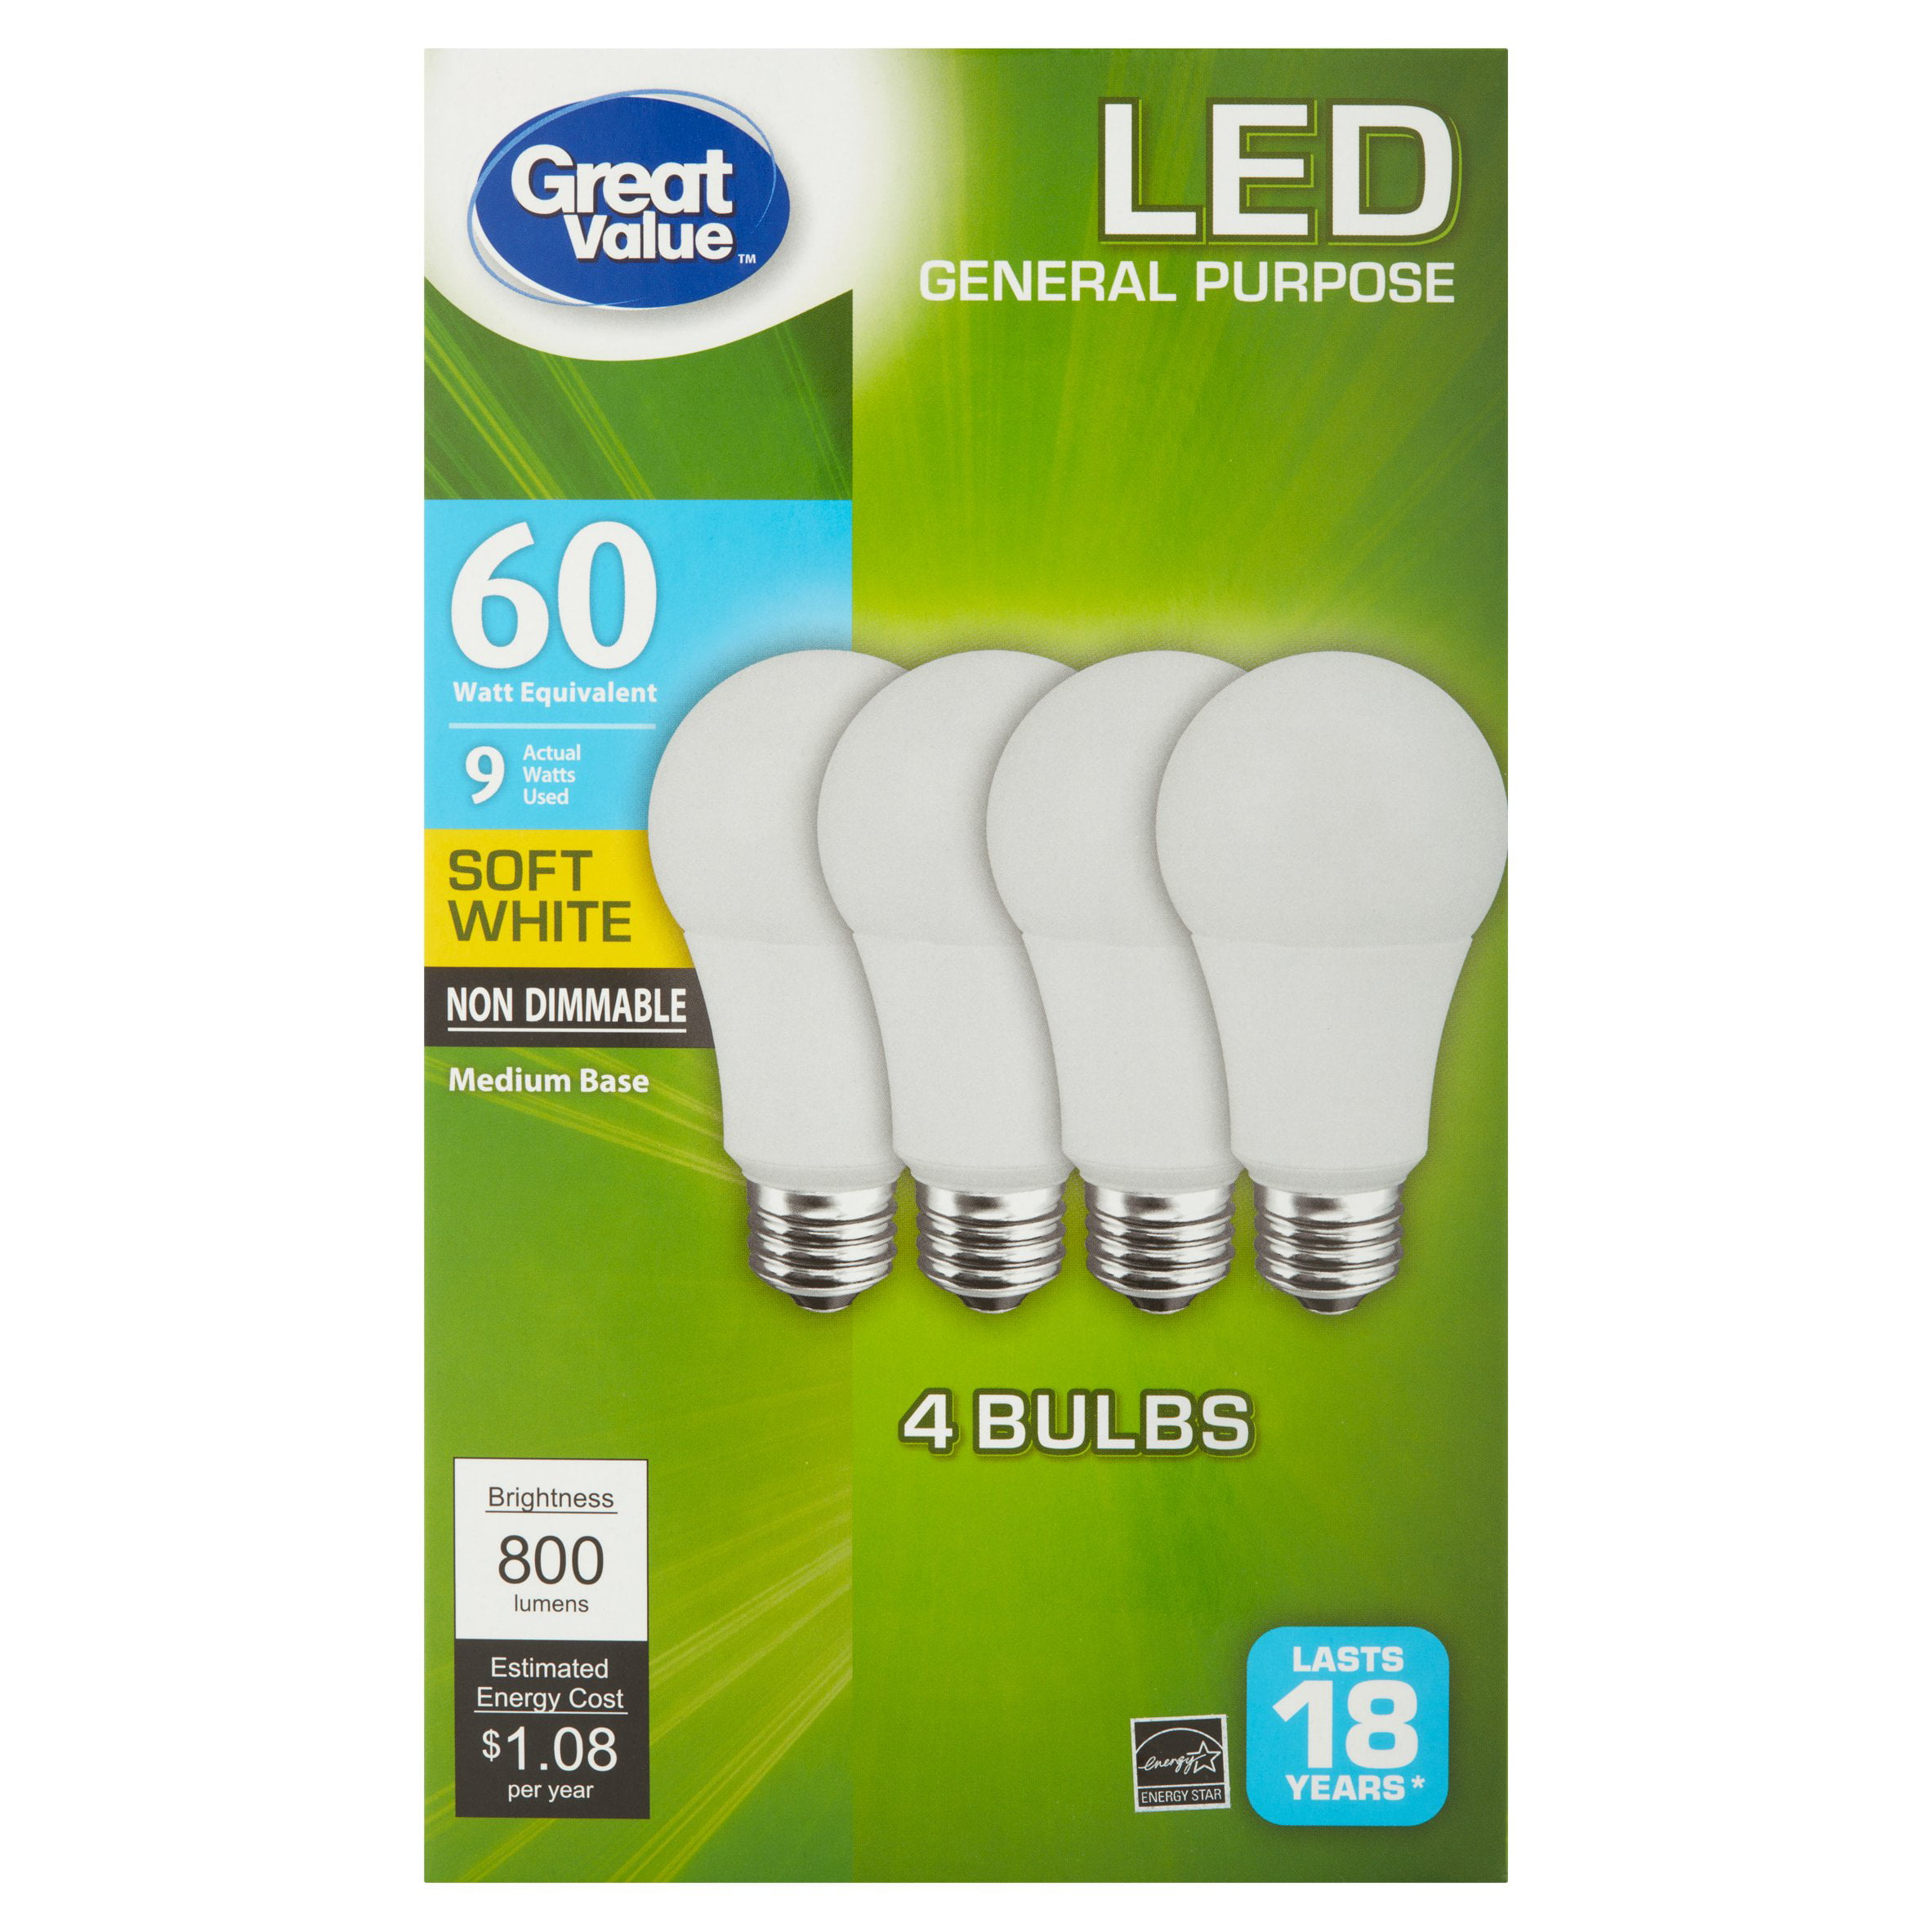 Great Value LED General Purpose Bulbs, 9W (60W Equivalent), Soft ...